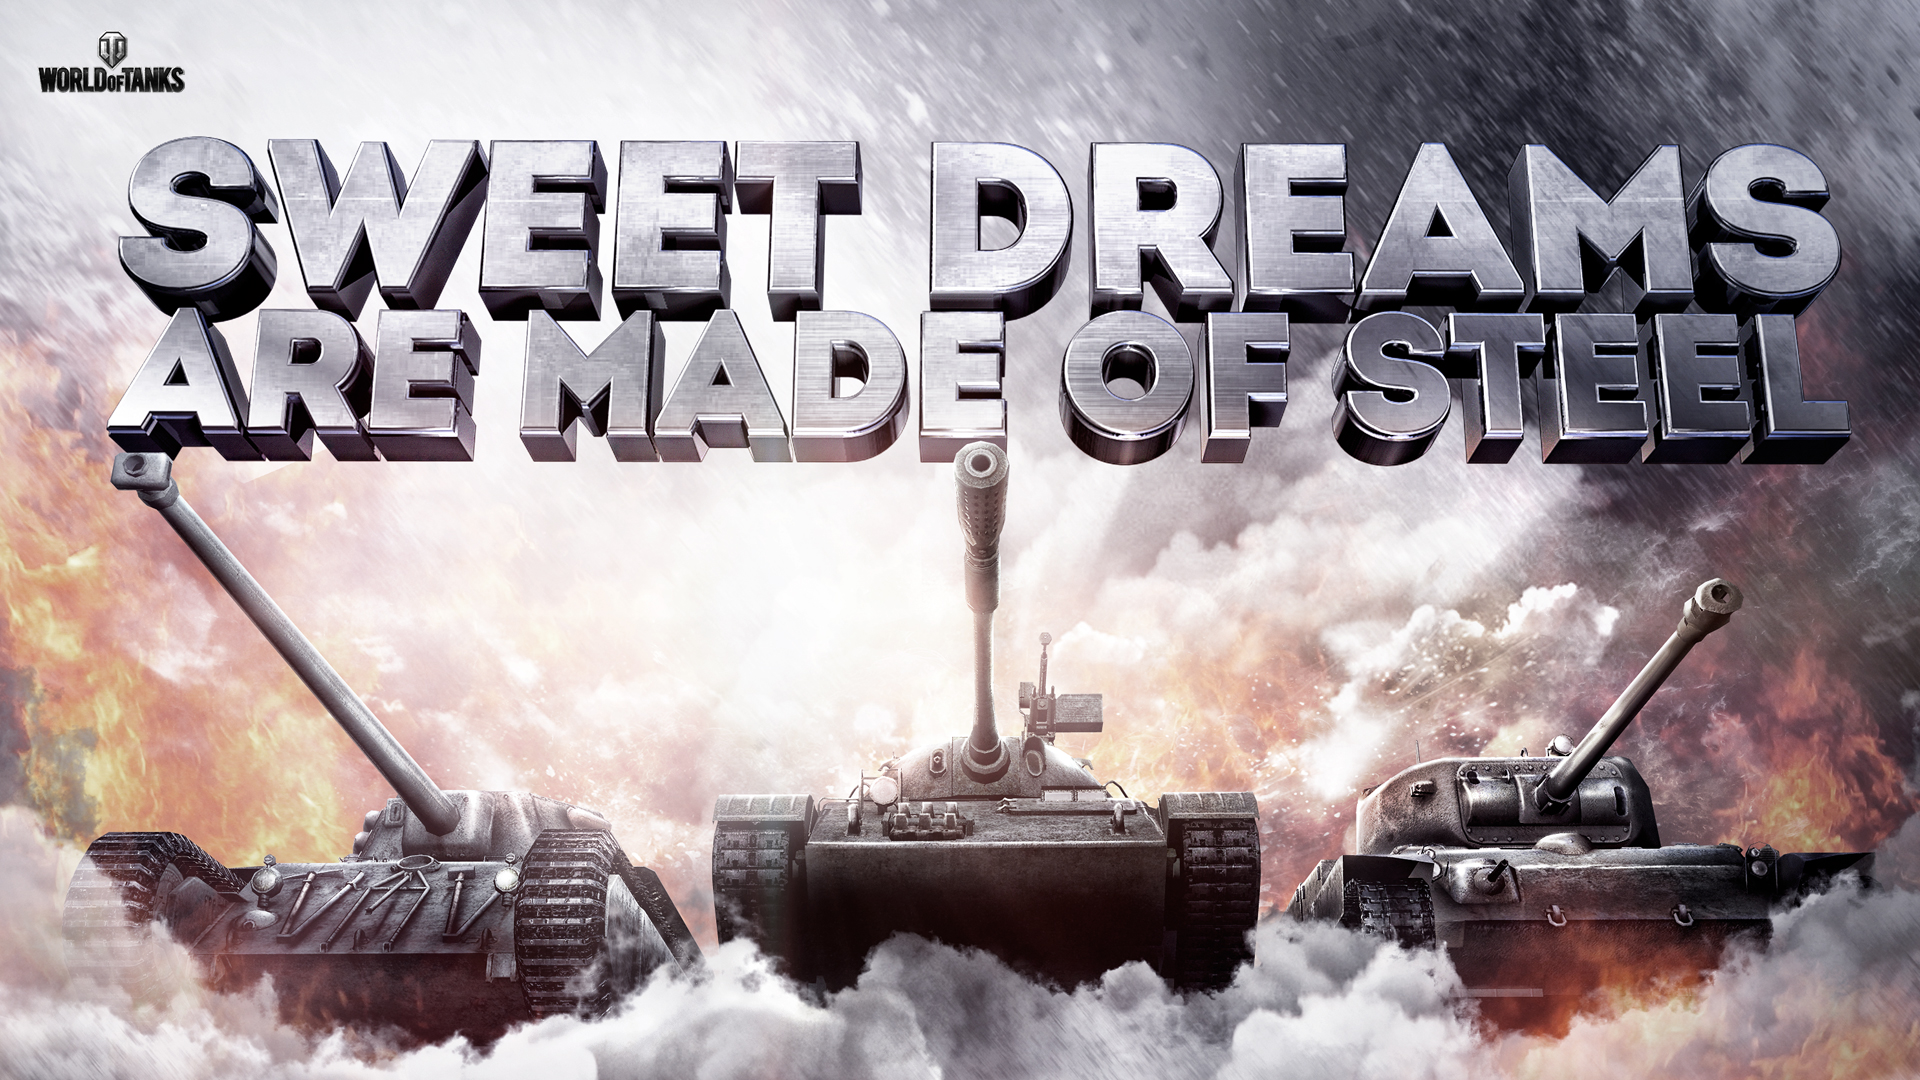 wot_sweetdreams_wp_1920x1080.jpg - World of Tanks